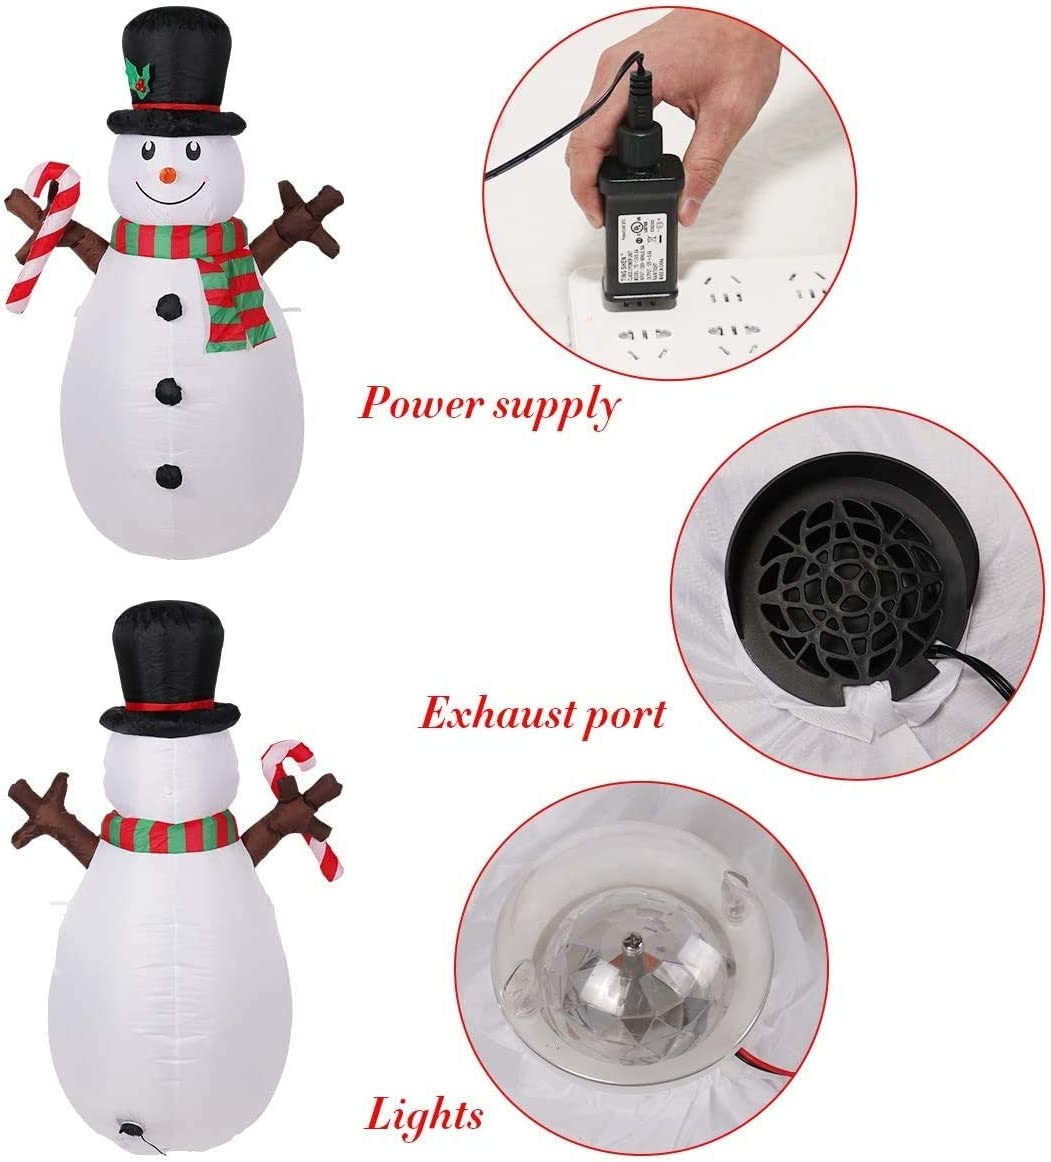 5 Ft Tall Inflatable Snowman Christmas Inflatable Snowman Built-in LED for Outdoor Yard Decoration,Lawn Lighted for Holiday Season Quick Air Inflated